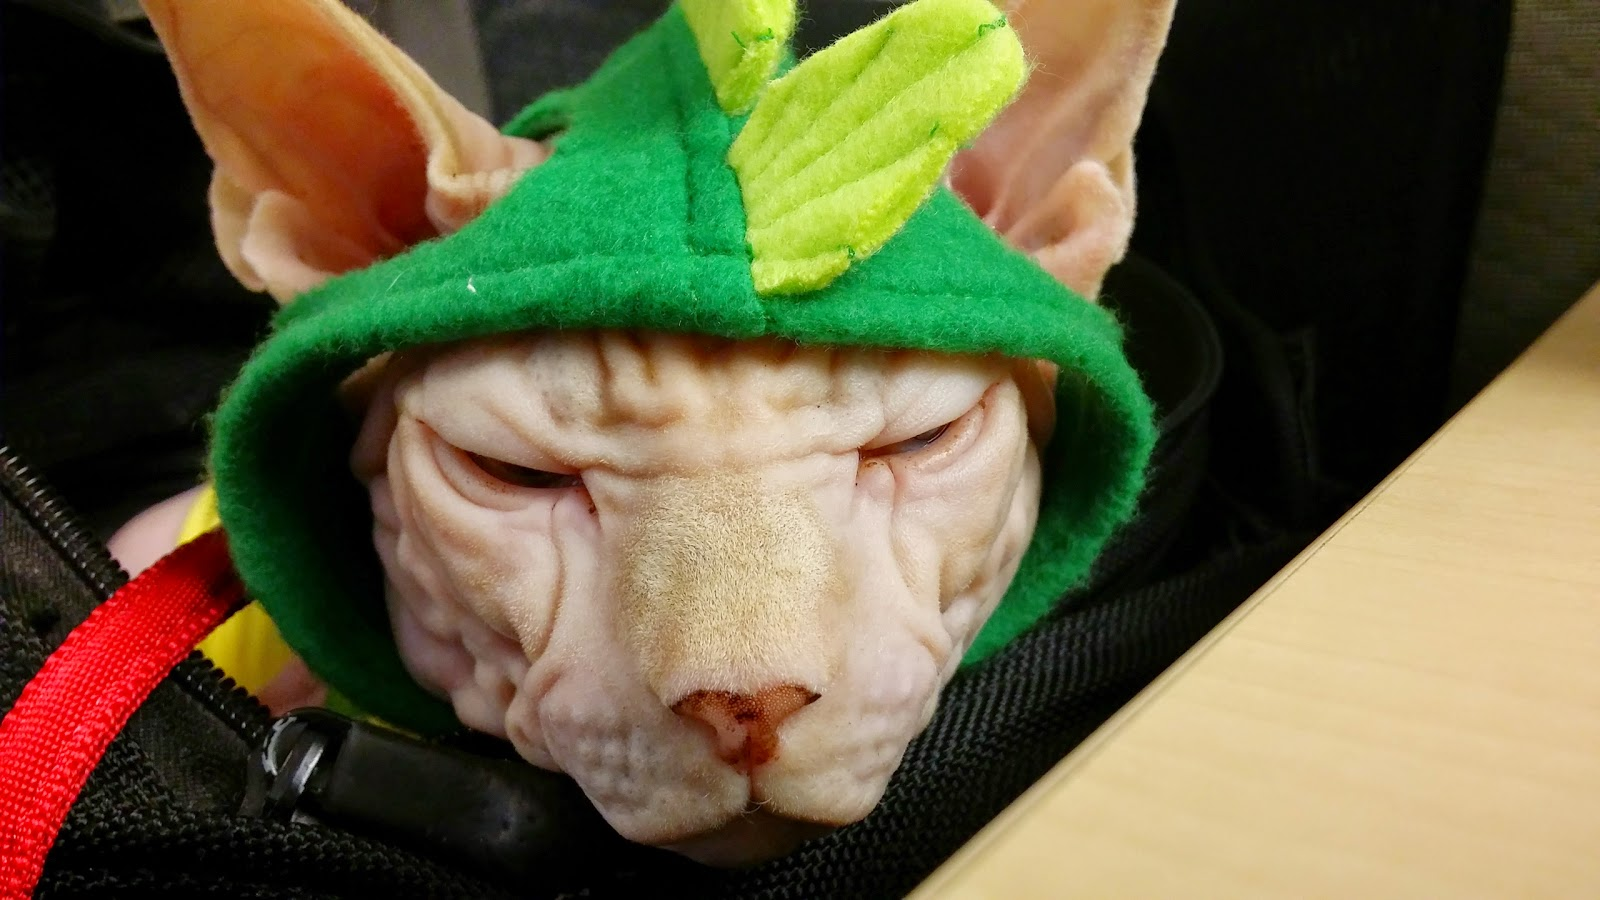 Dress up your pet day - From The Ridiculous To The Sublime Dressing It Up Is What We Do